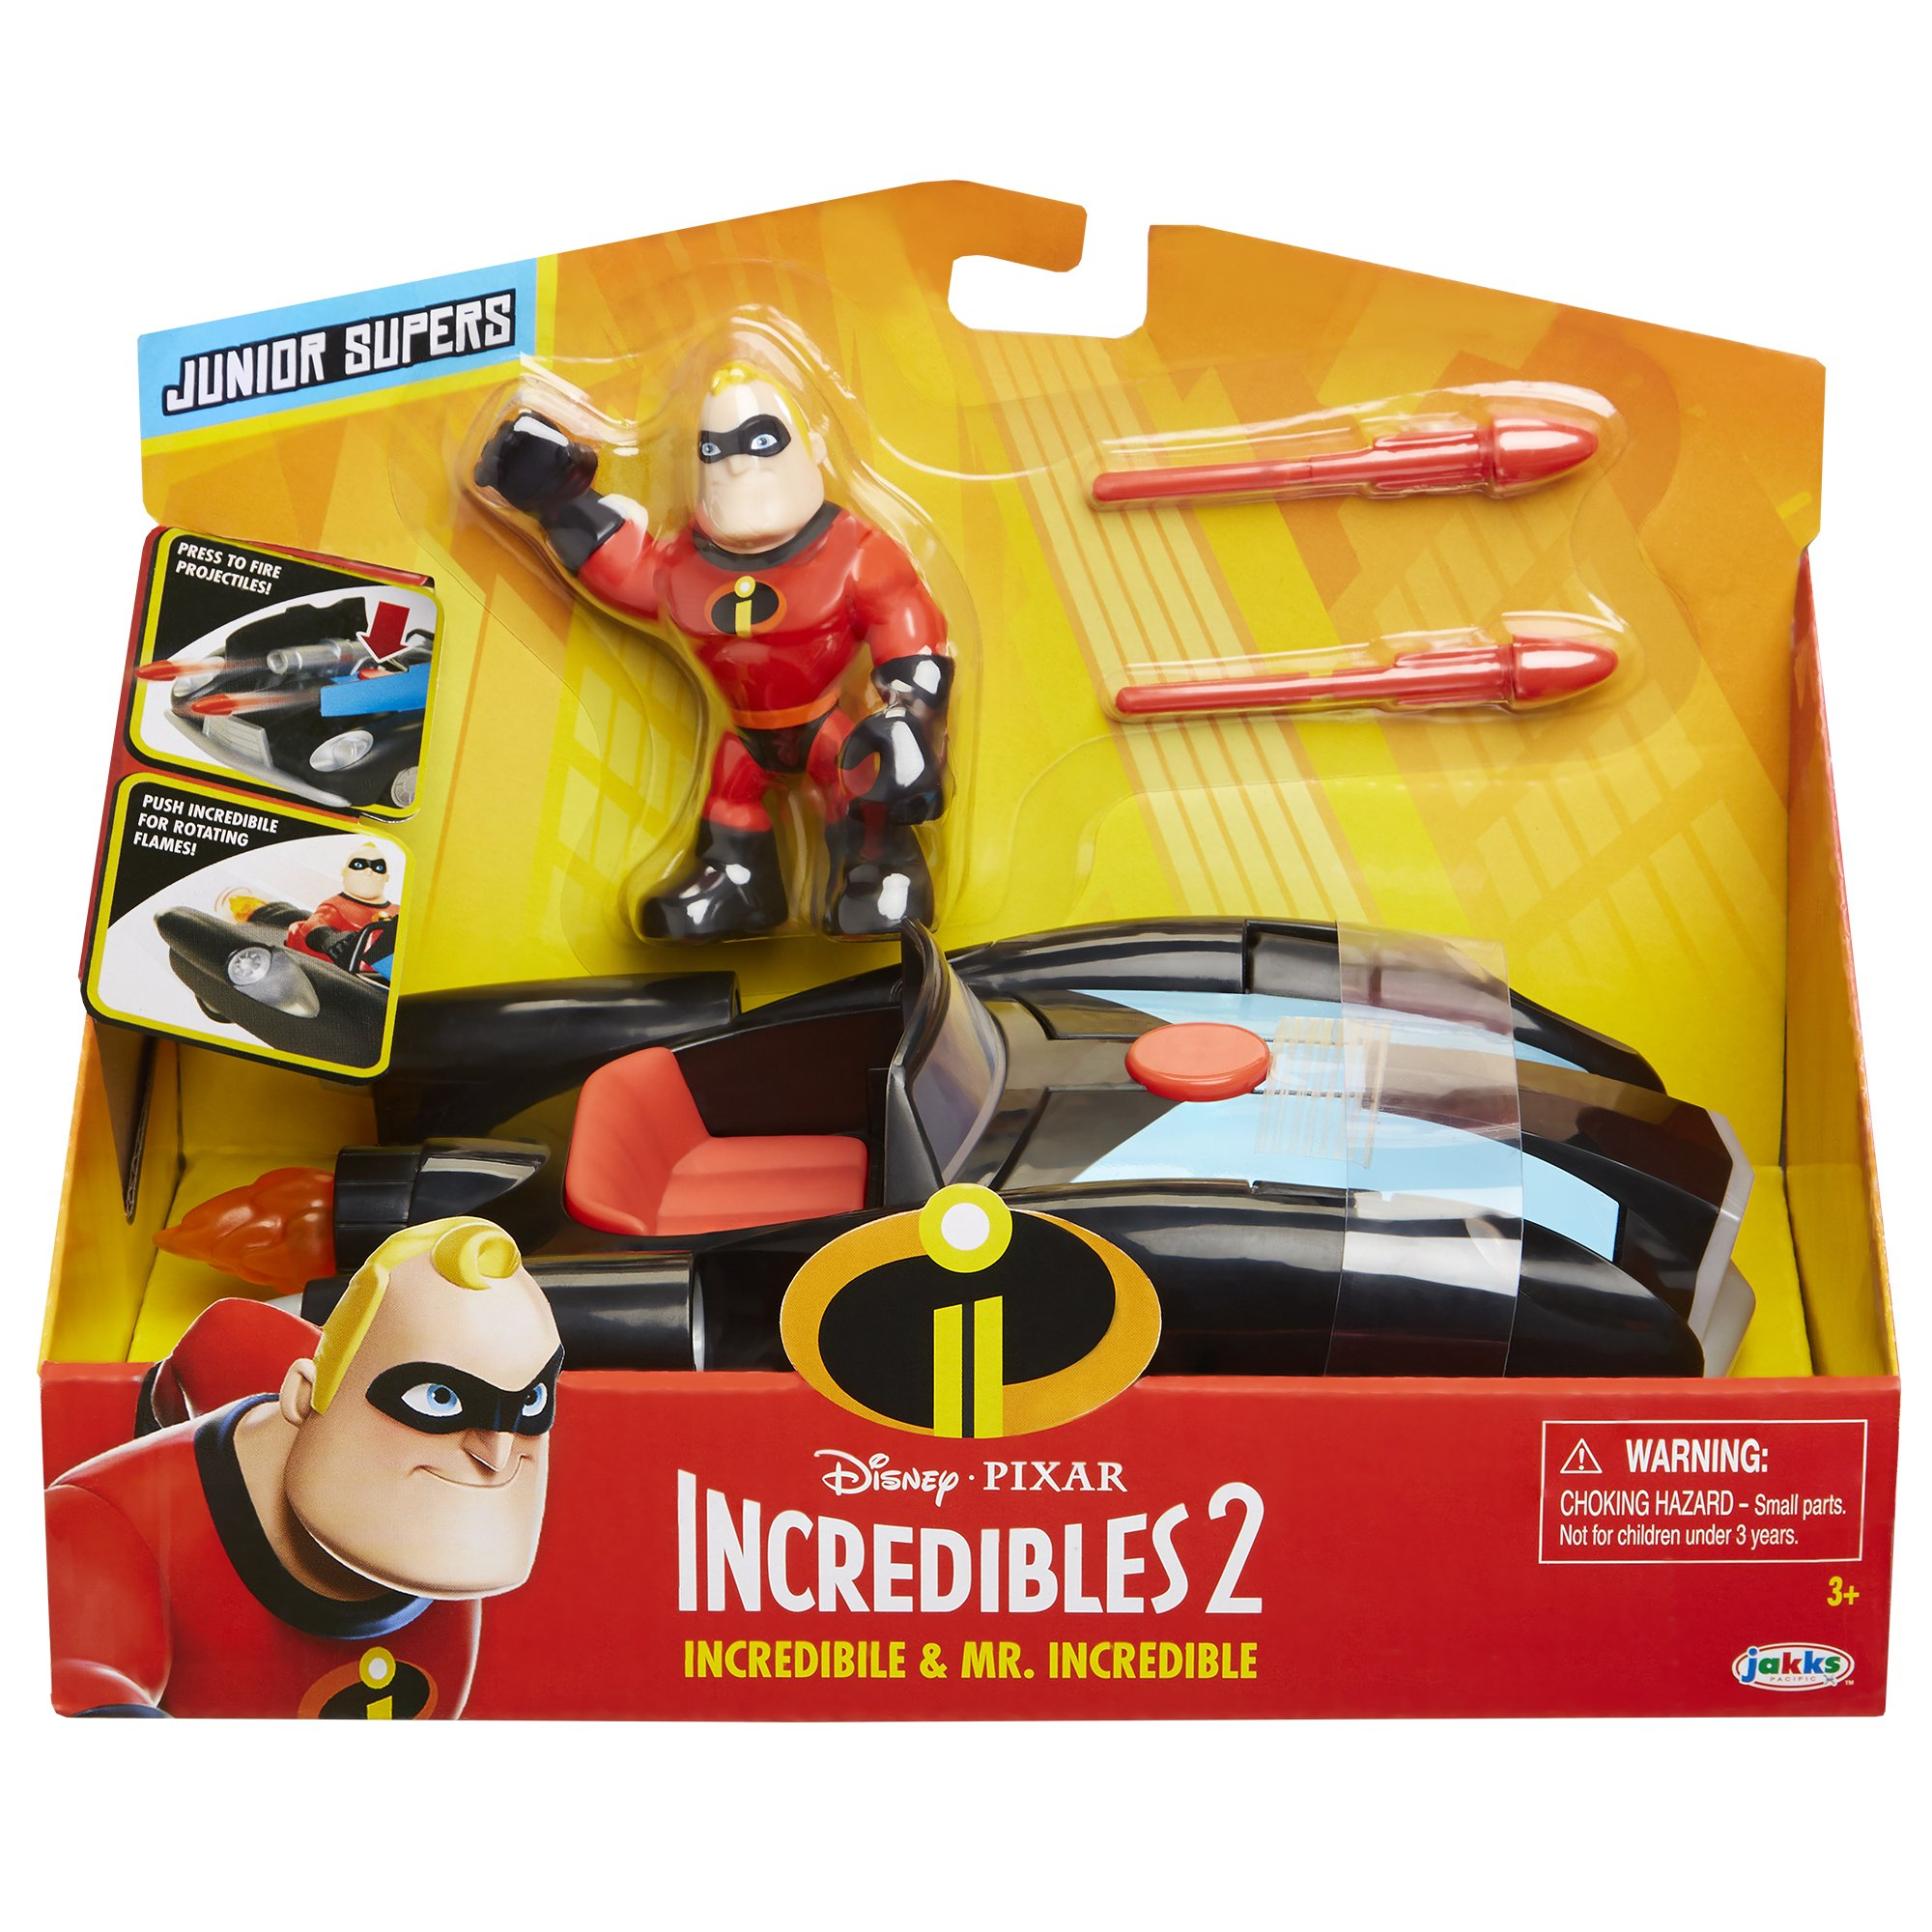 The Incredibles 2 Incredibile Car & Mr. Incredible Action Figure 2-Piece Set, Black Car and Red Mr. Incredible Figure, Medium by The Incredibles 2 (Image #4)